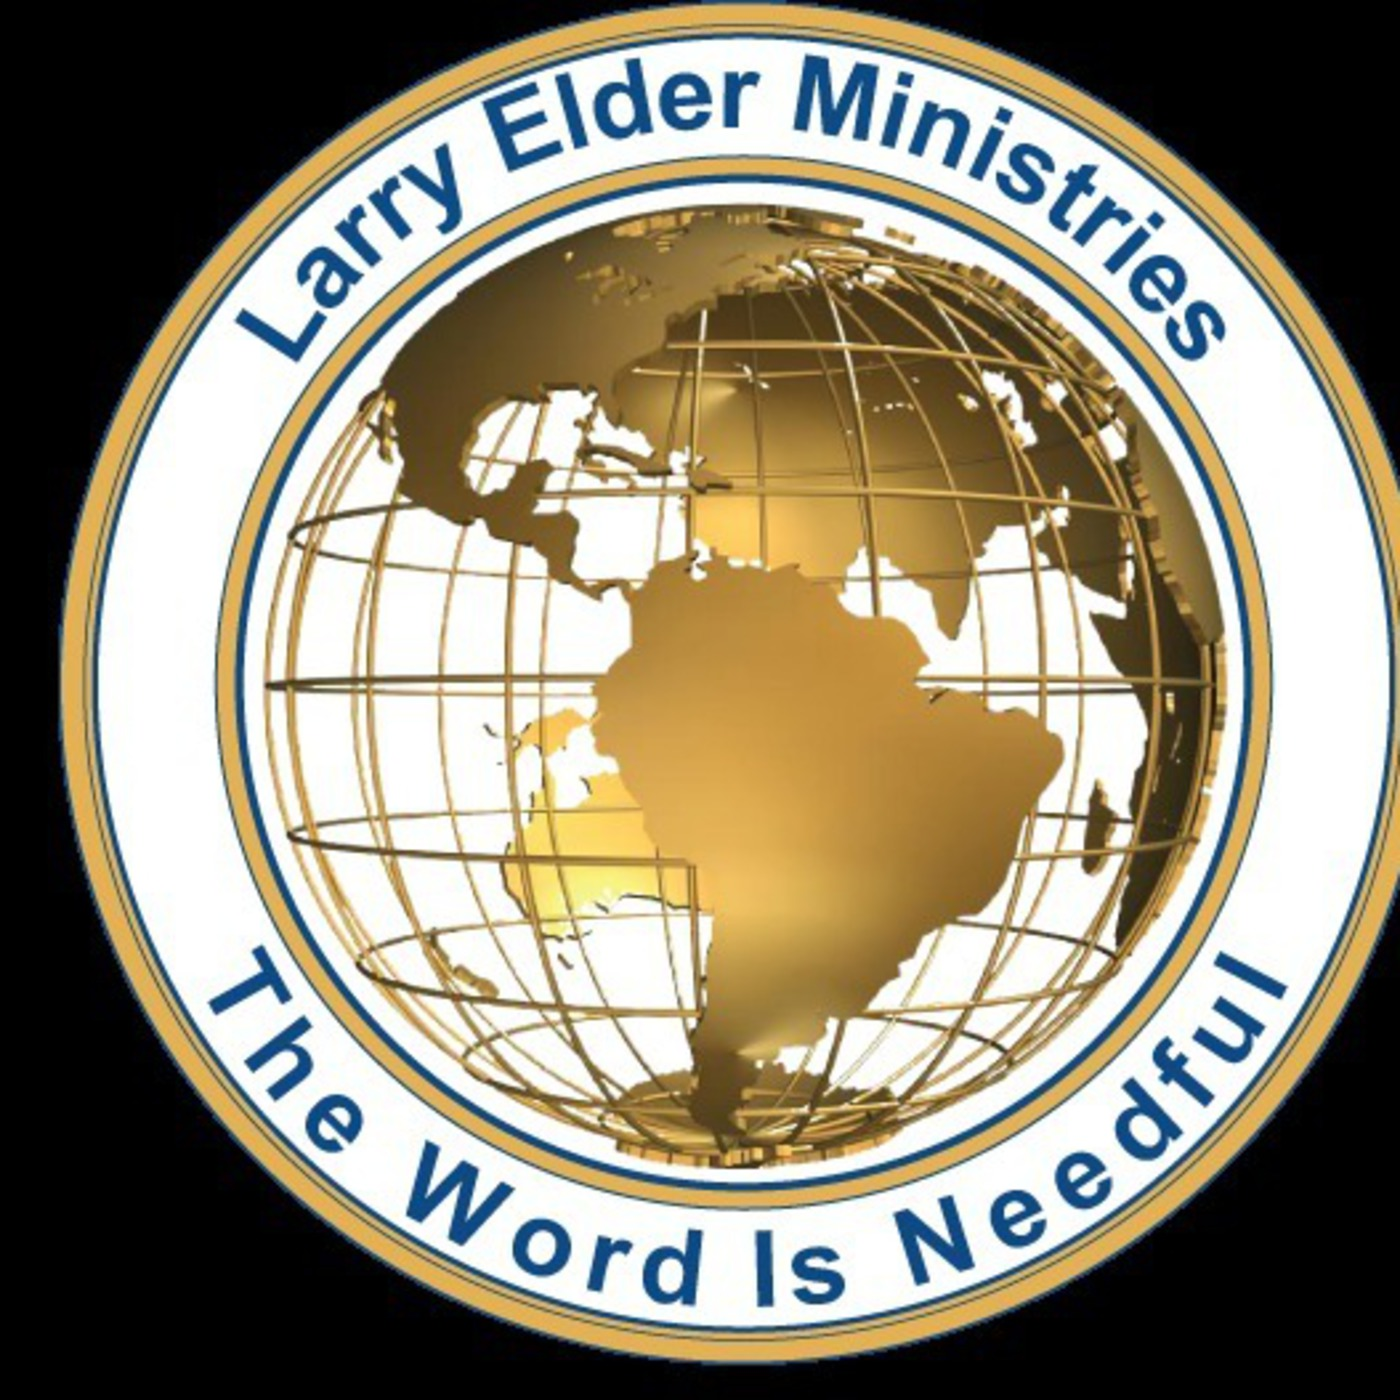 Larry Elder Ministries